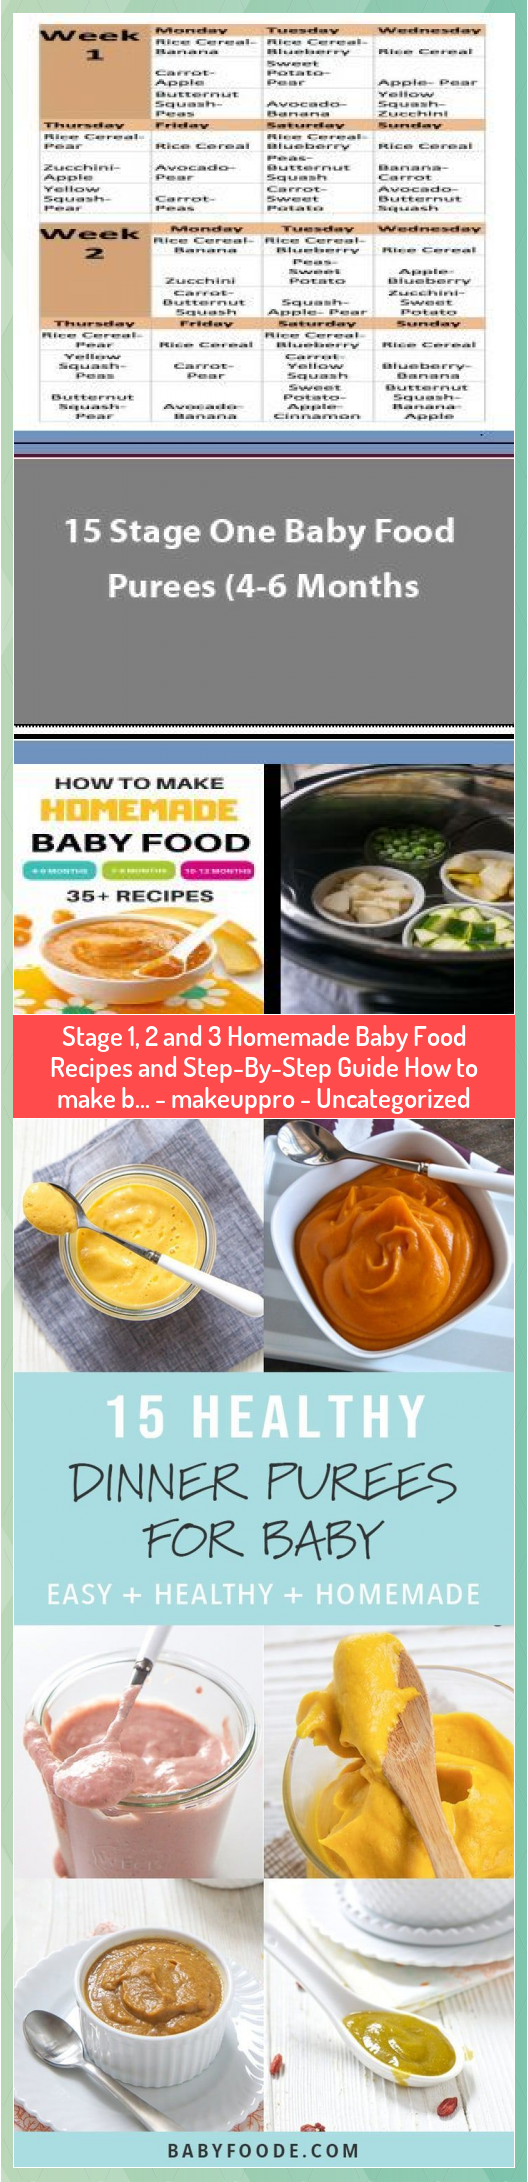 Stage 1, 2 and 3 Homemade Baby Food Recipes and Step-By-Step Guide How to make b... #babyfoodrecipesstage1 Stage 1, 2 and 3 Homemade Baby Food Recipes and Step-By-Step Guide How to make b... #homemadebabyfoods